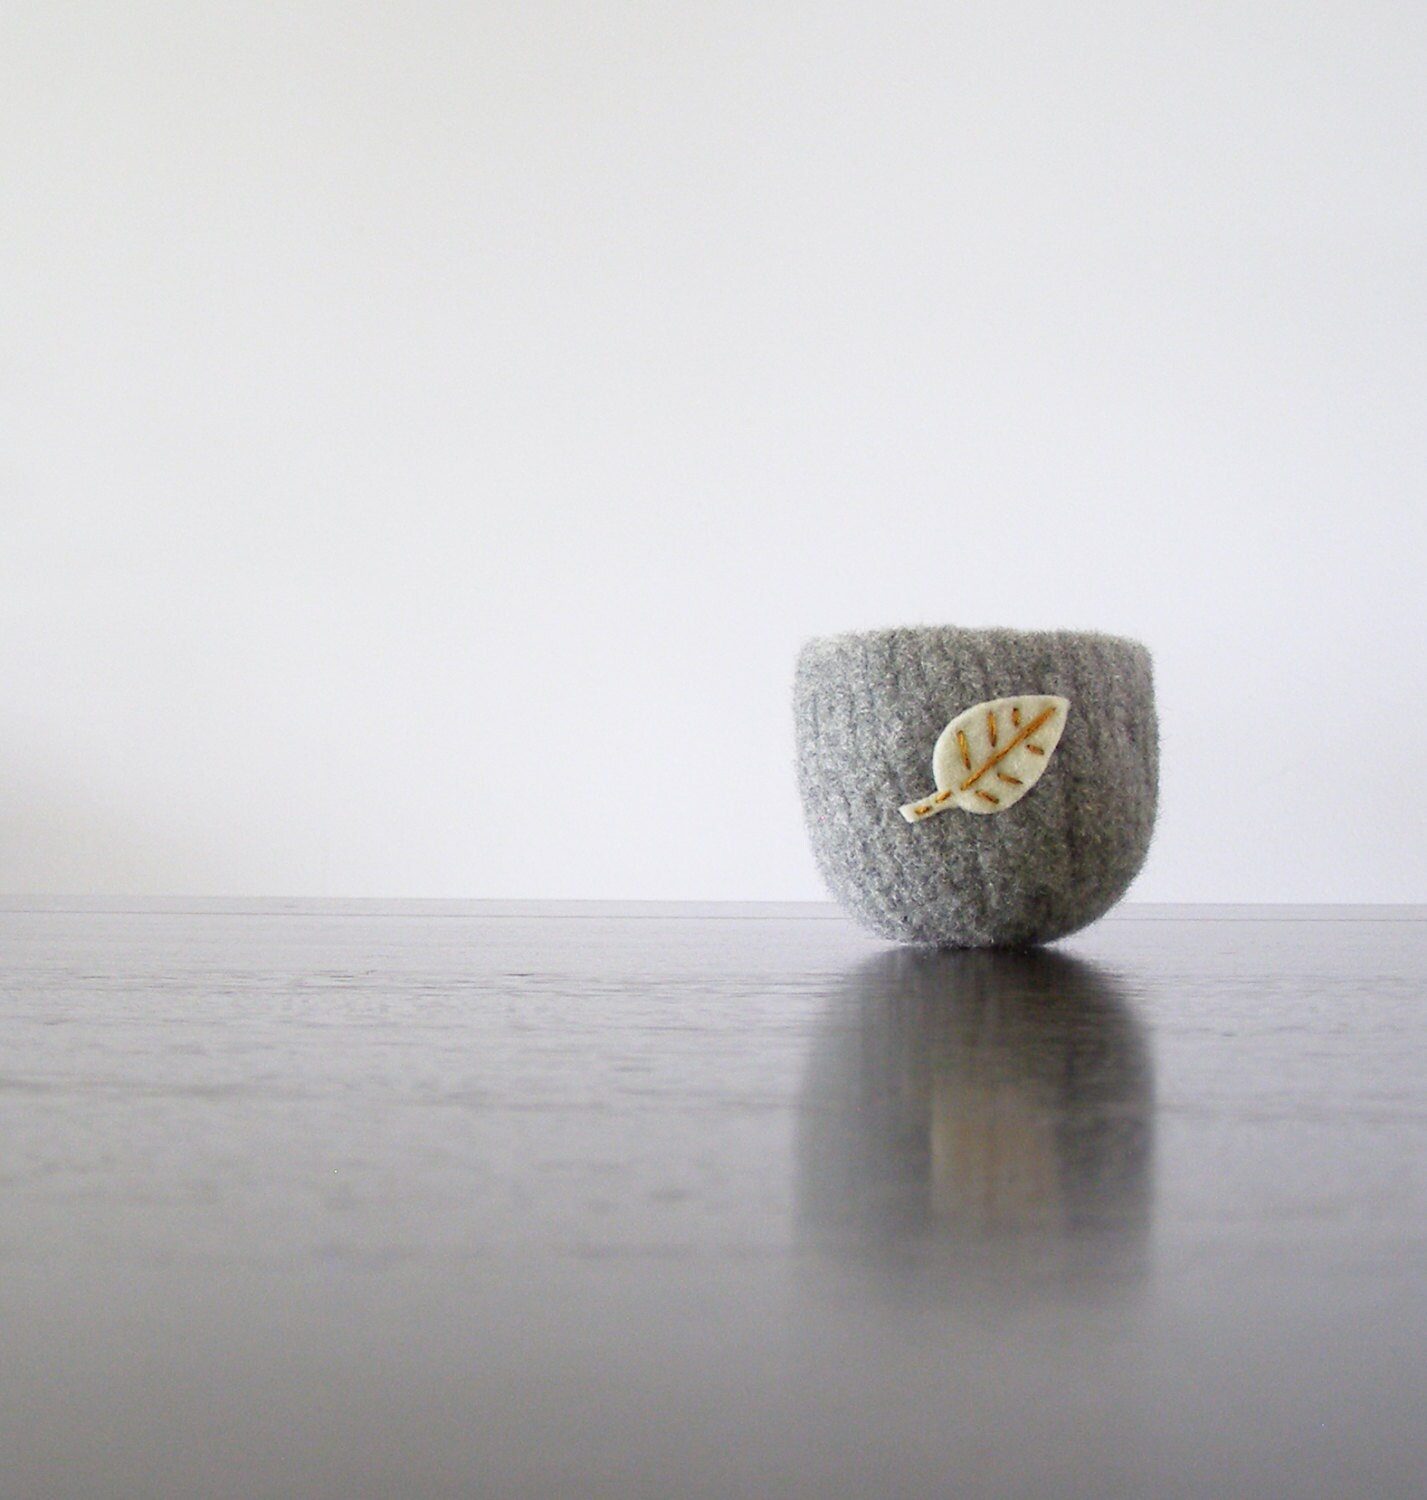 autumn leaves - dove grey felted wool bowl with white and golden yellow felt leaf - ring bowl, autumn decor, Waldorf nature item - theFelterie